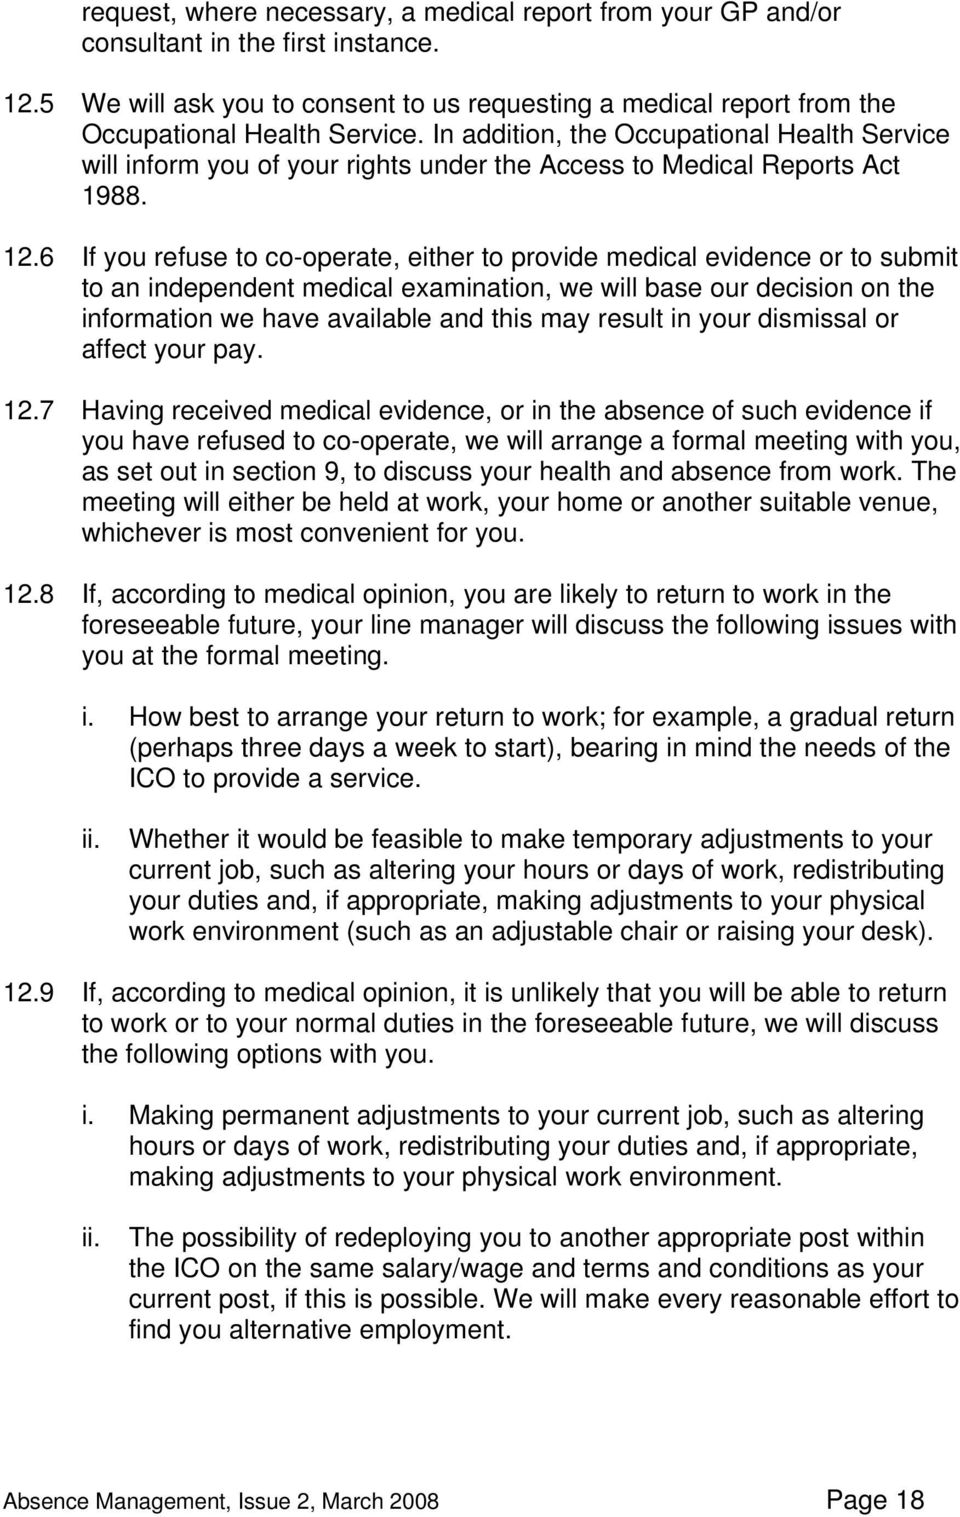 6 If you refuse to co-operate, either to provide medical evidence or to submit to an independent medical examination, we will base our decision on the information we have available and this may